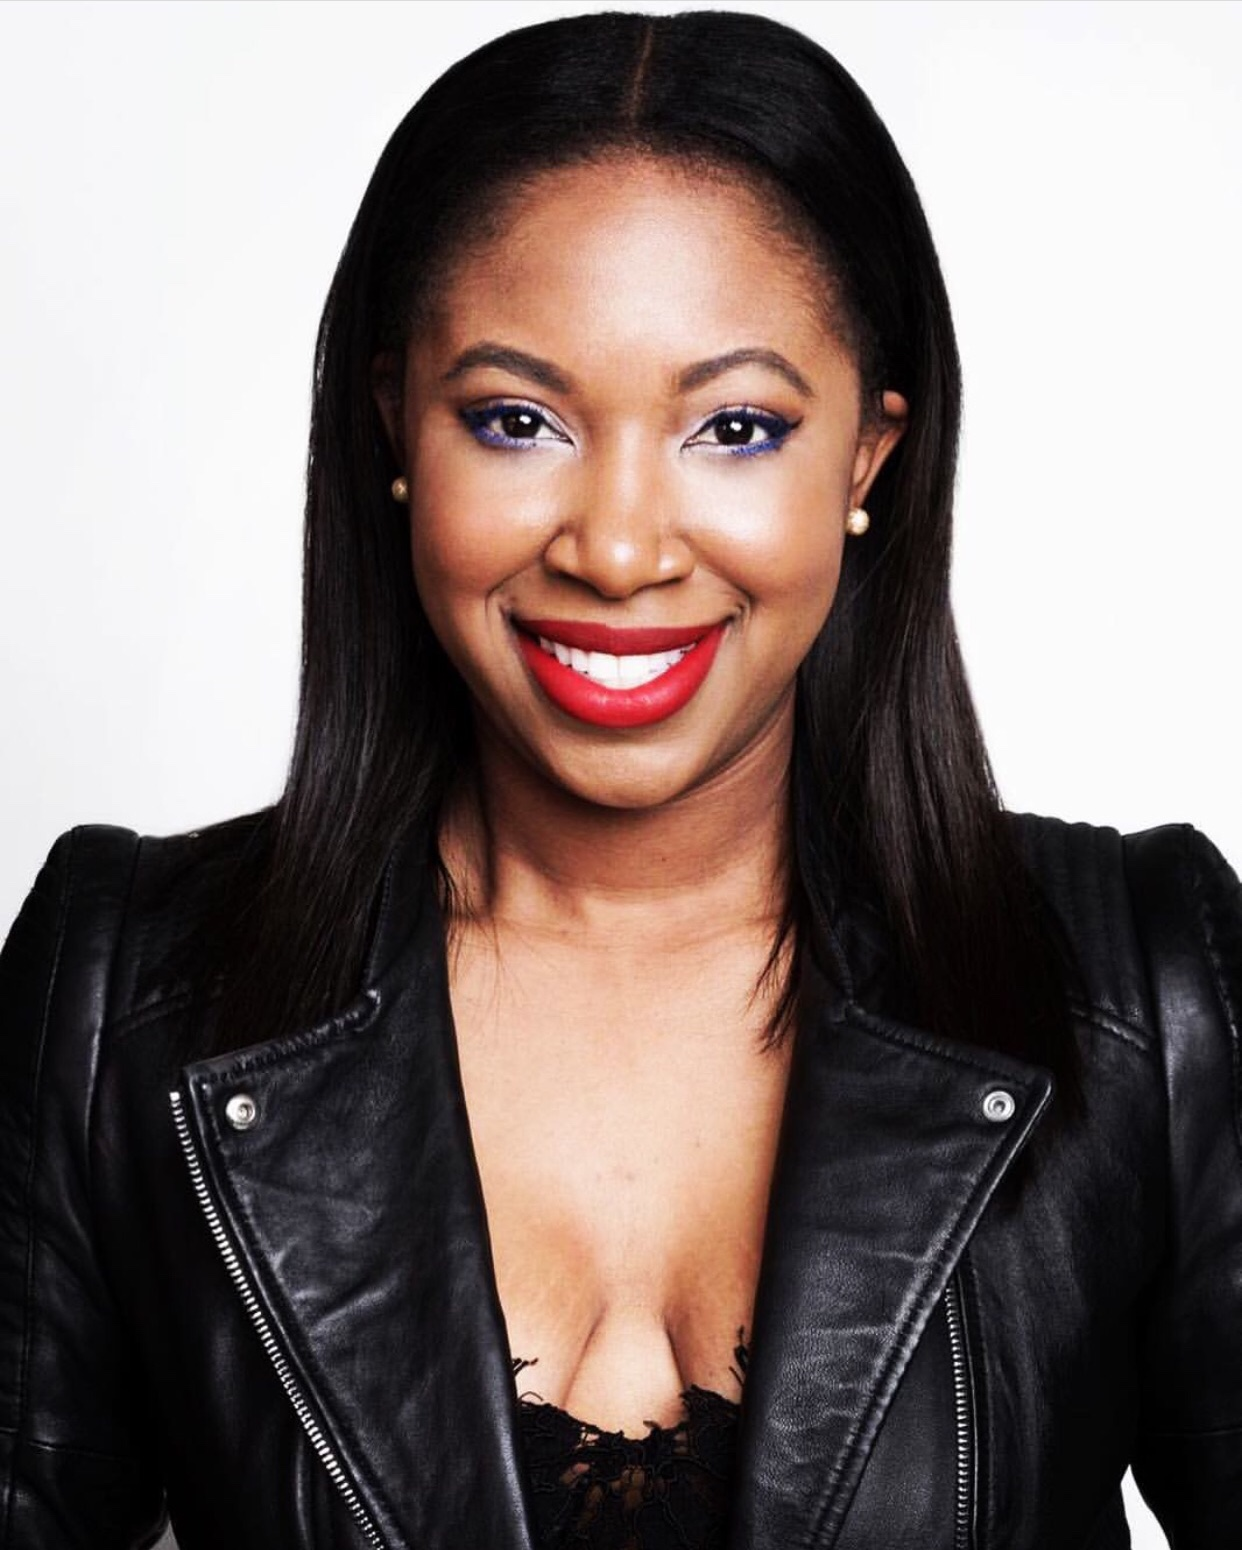 Salon Hair Brooklyn Hair Salon Stylist Sunshine Dunlop Prospect Heights